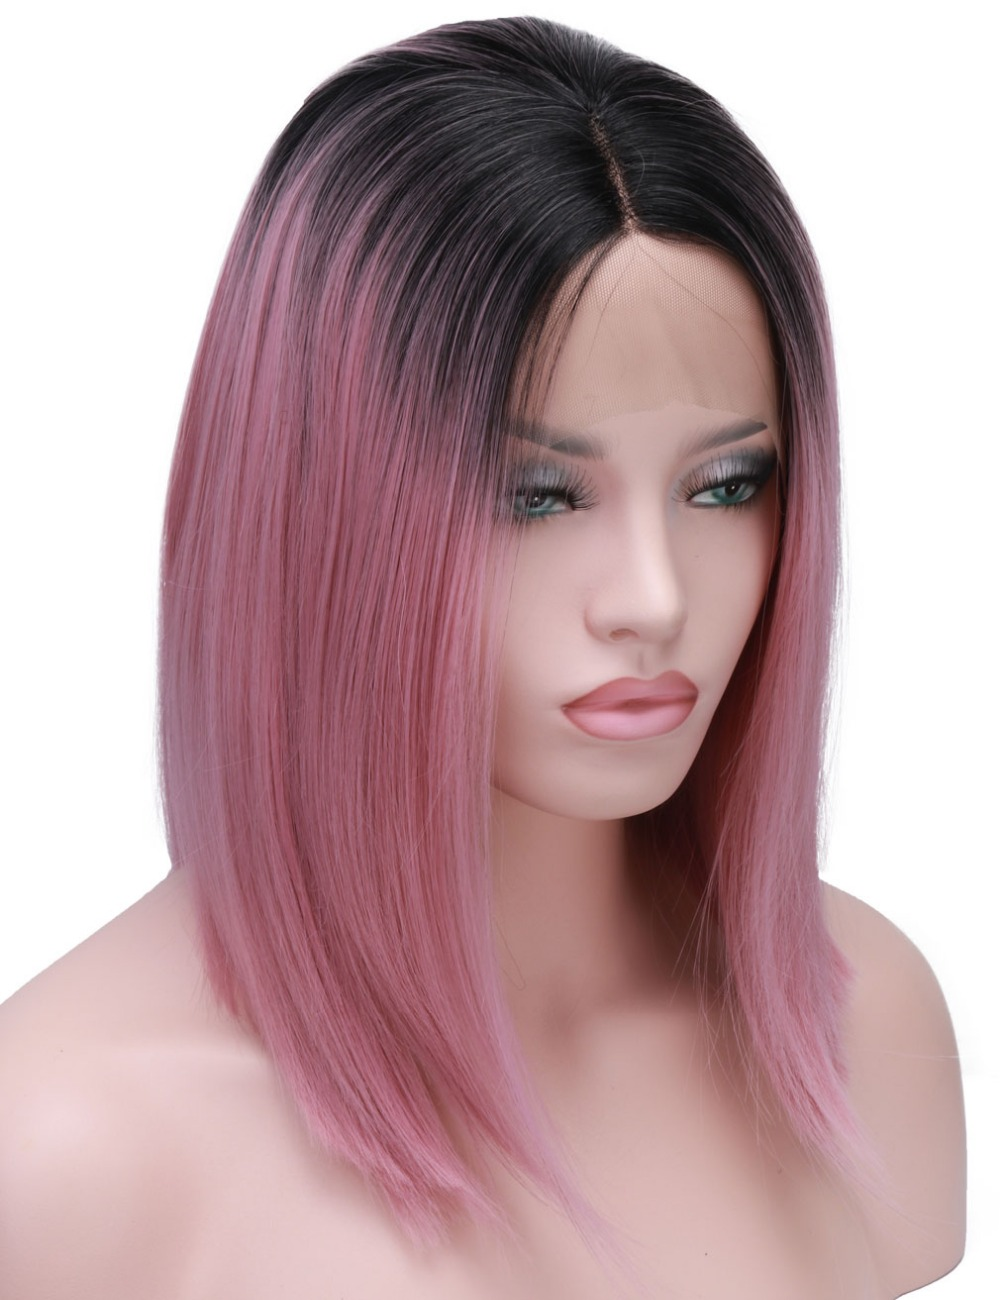 COLODO Short Bob Cut Wigs Ombre Pink Two Tone Color Silk Straight Lace Front Synthetic Wigs Black Roots Heat Resistant For Women